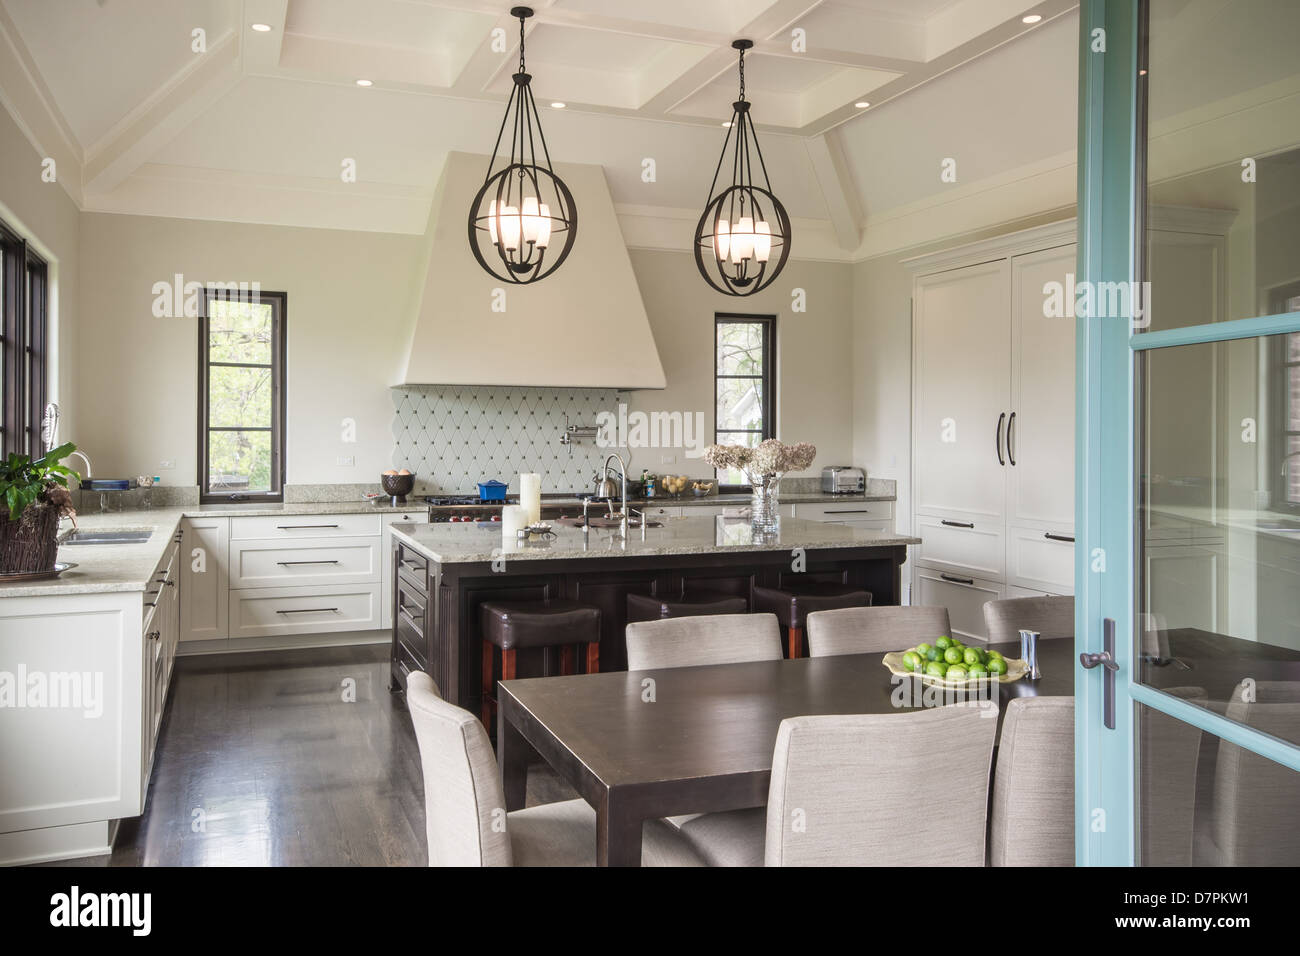 Modern Italian Kitchen - Stock Image